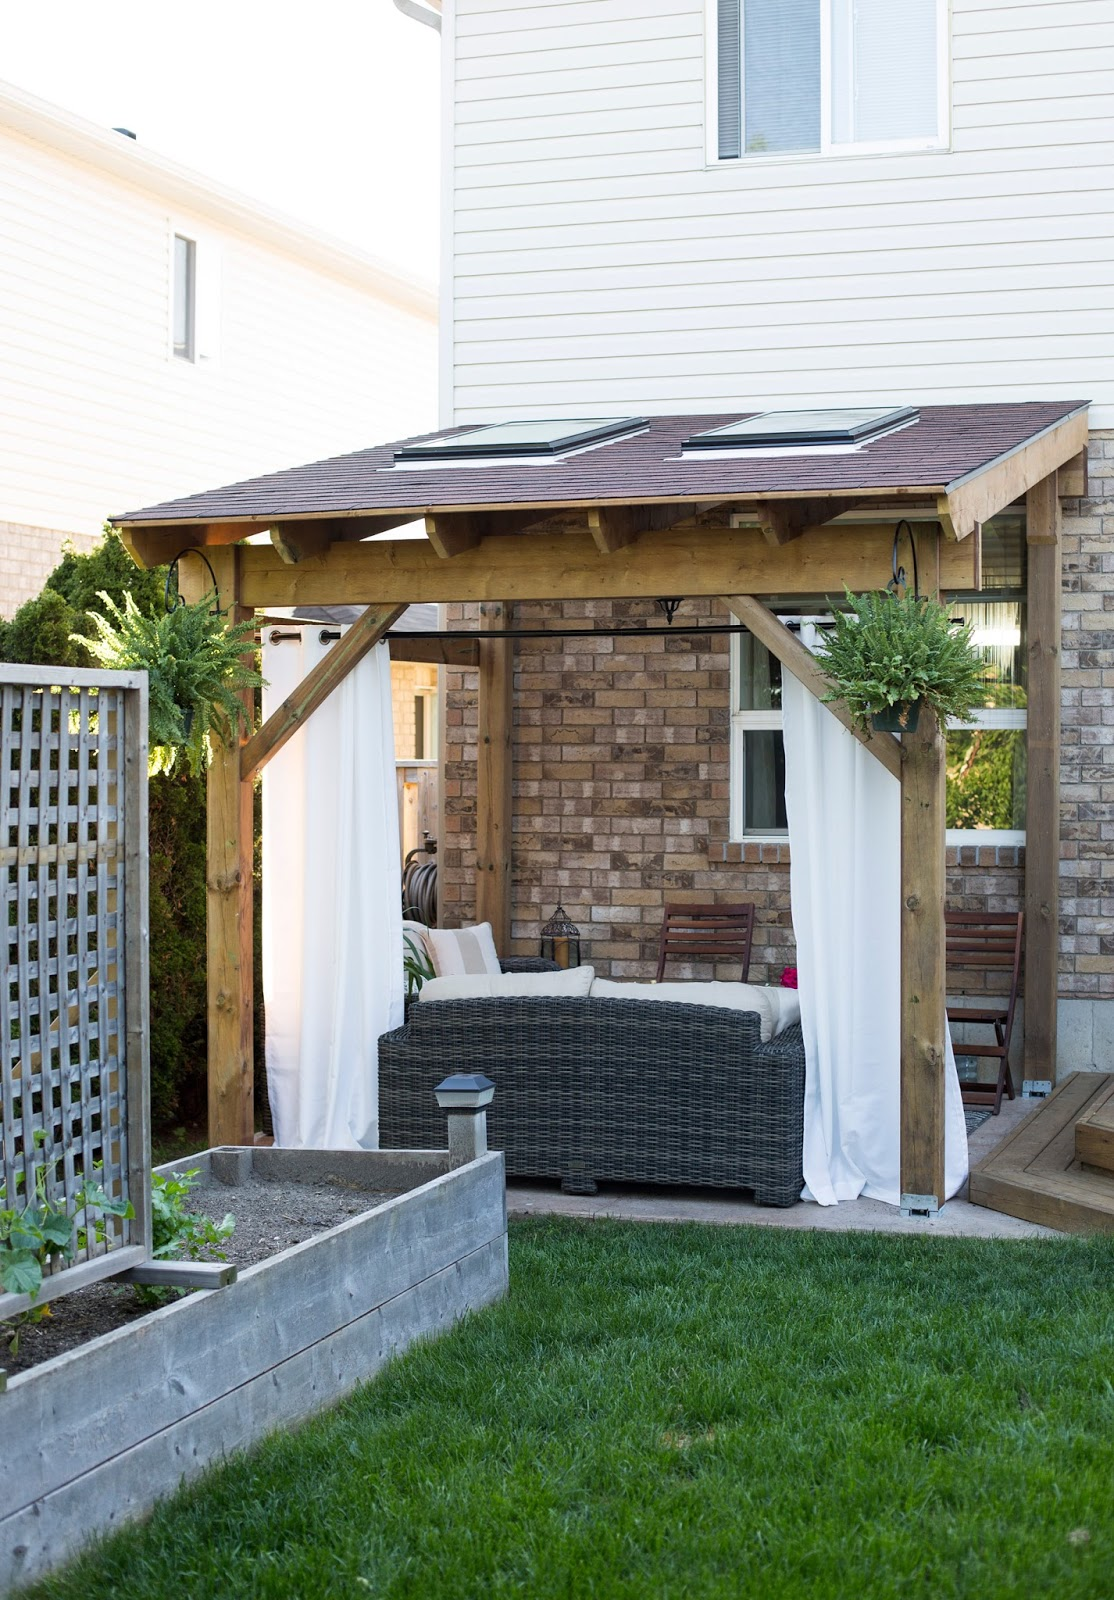 Cover Patio Pergola Hdblogsquad How To Build A Covered Patio Brittany Stager